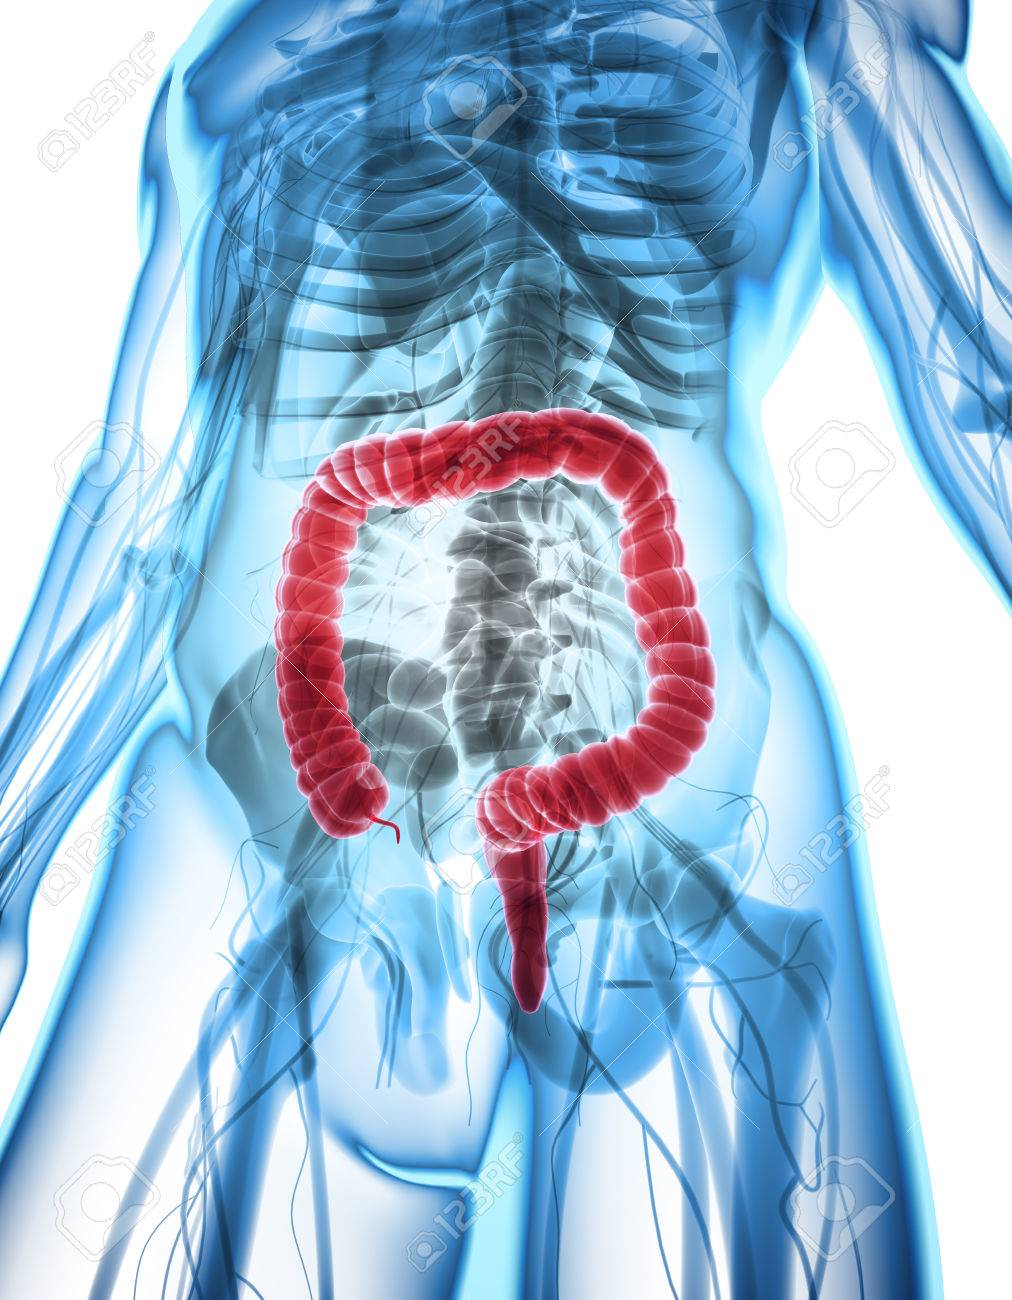 3d Illustration Of Large Intestine Part Of Digestive System Stock